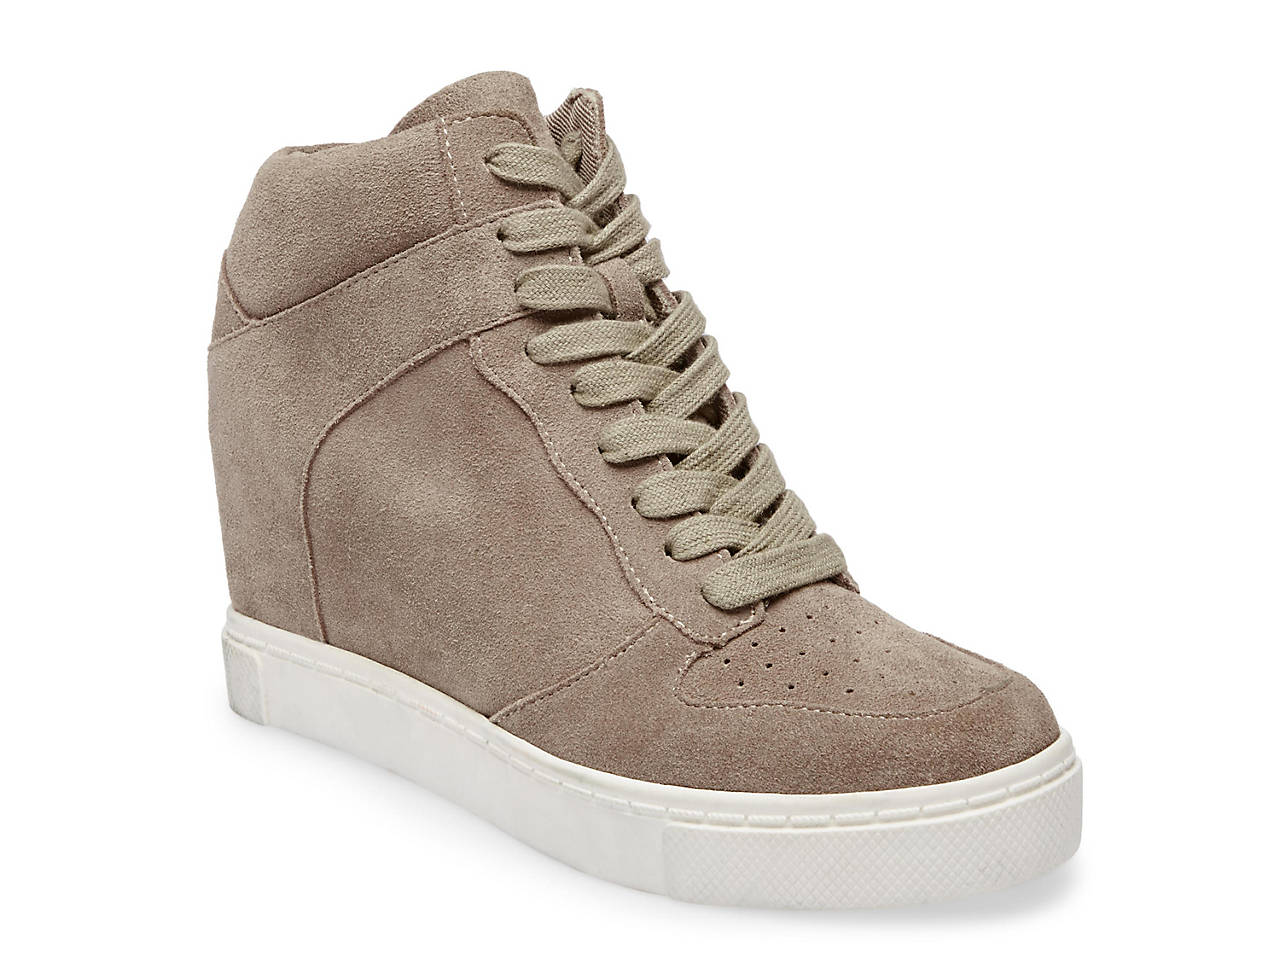 7ea2c51b503 Steve Madden Noah Wedge Sneaker Women s Shoes